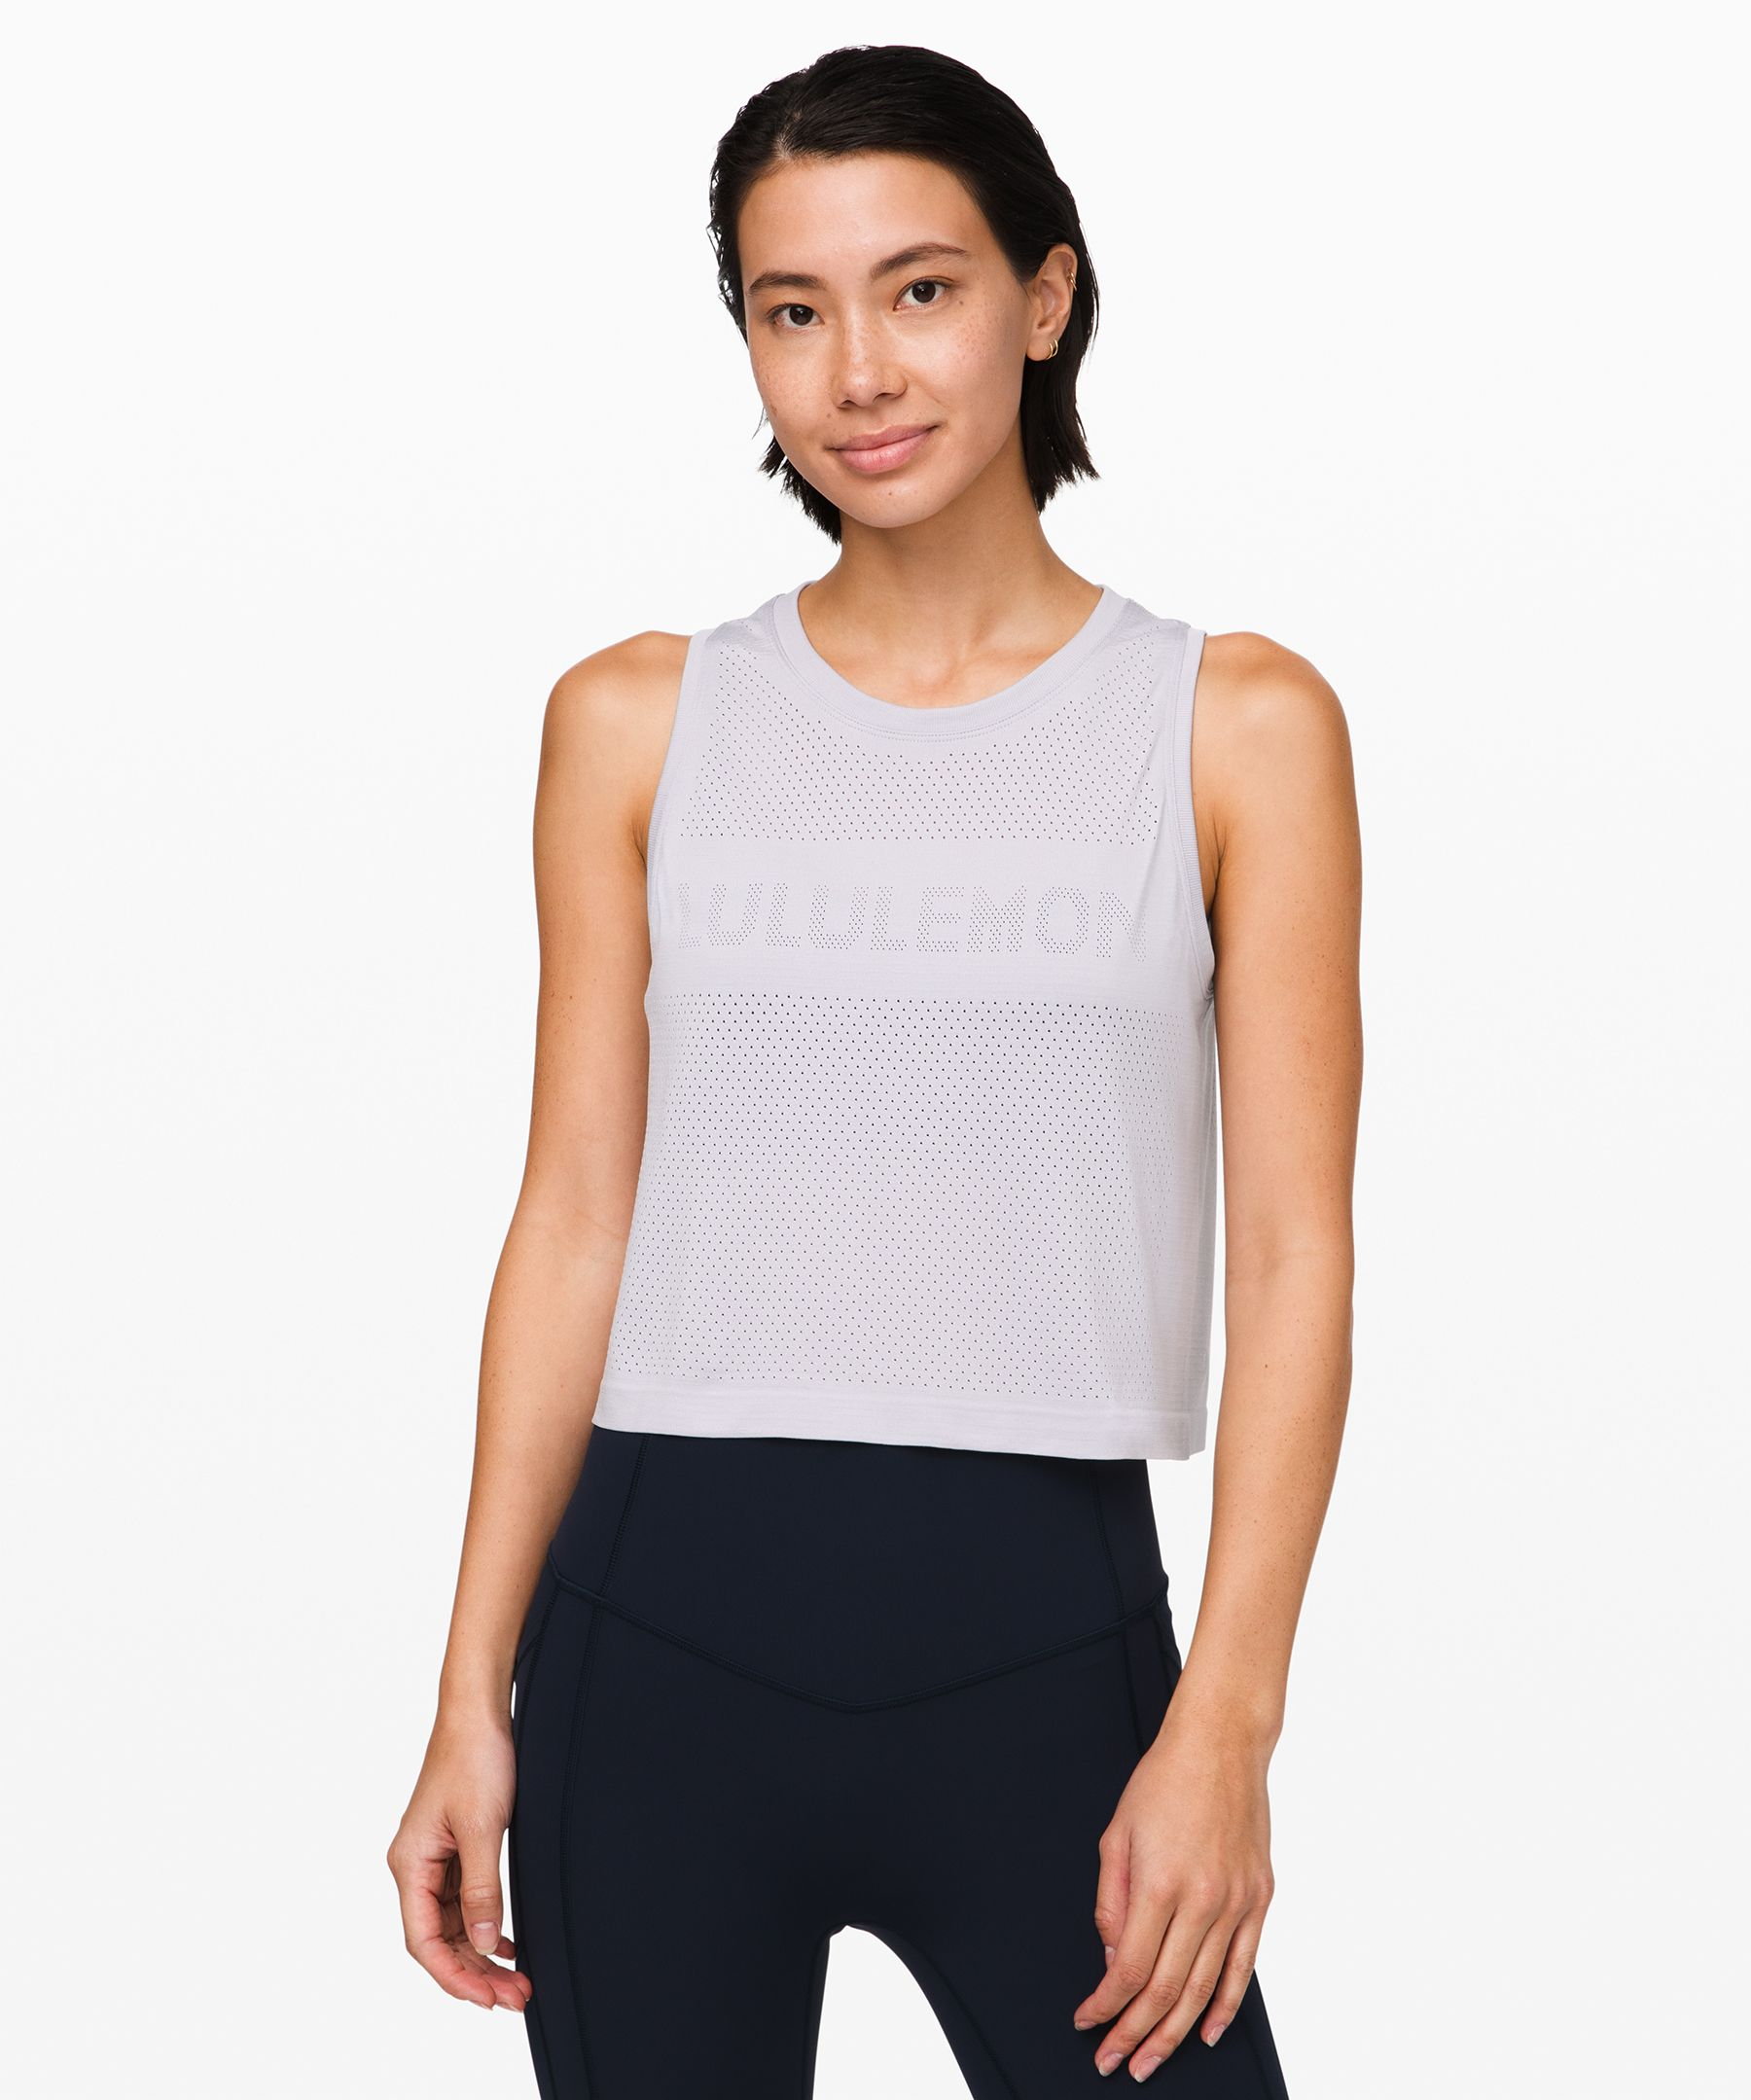 From long runs to circuit  reps, catch your cool in this  seamless and anti-stink  cropped tank. Open-hole  ventilation allows for plenty  of airflow when your workout  heats up.